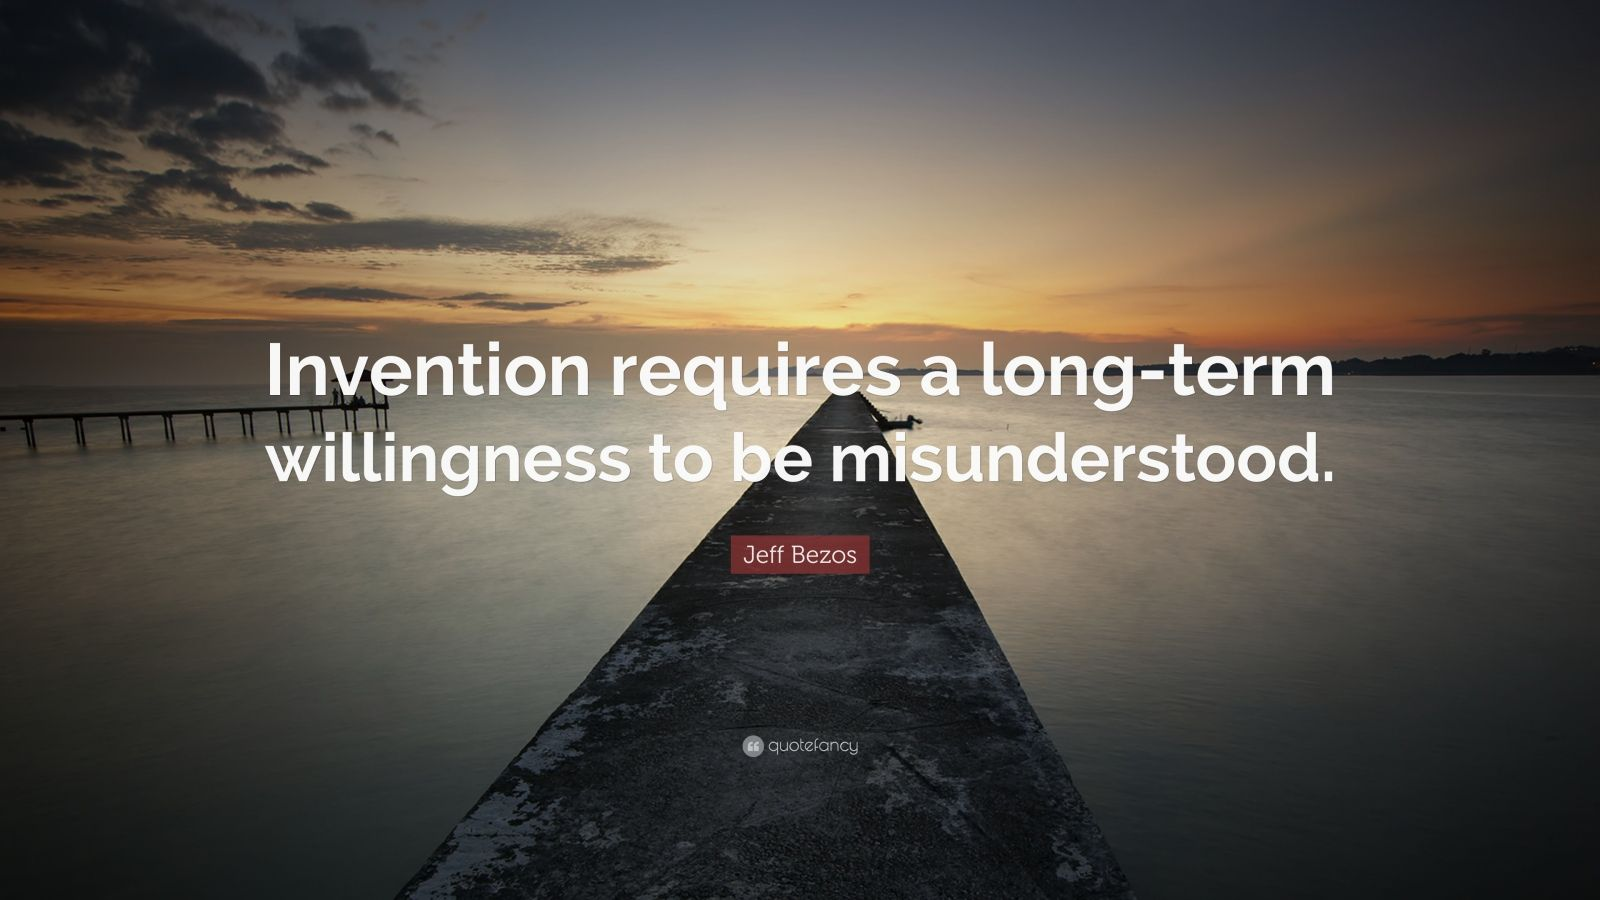 """Jeff Bezos Quote: """"Invention requires a long-term willingness to be misunderstood."""""""